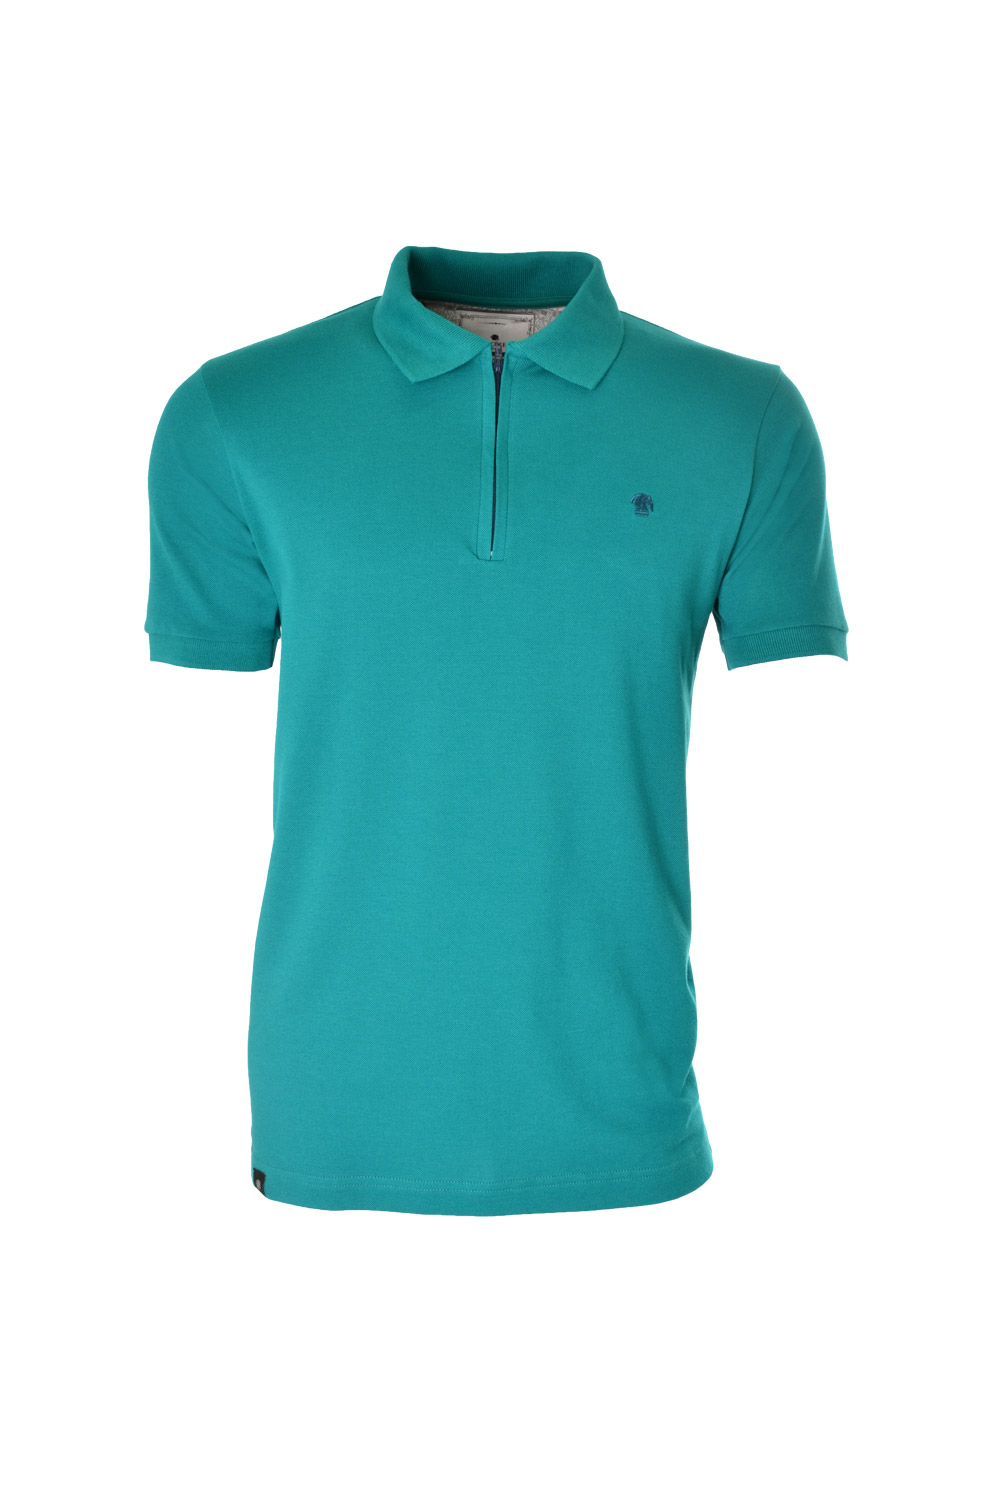 POLO MC CASUAL SUPER SLIM ALGODAO & ELASTANO PIQUET LISO VERDE MEDIO